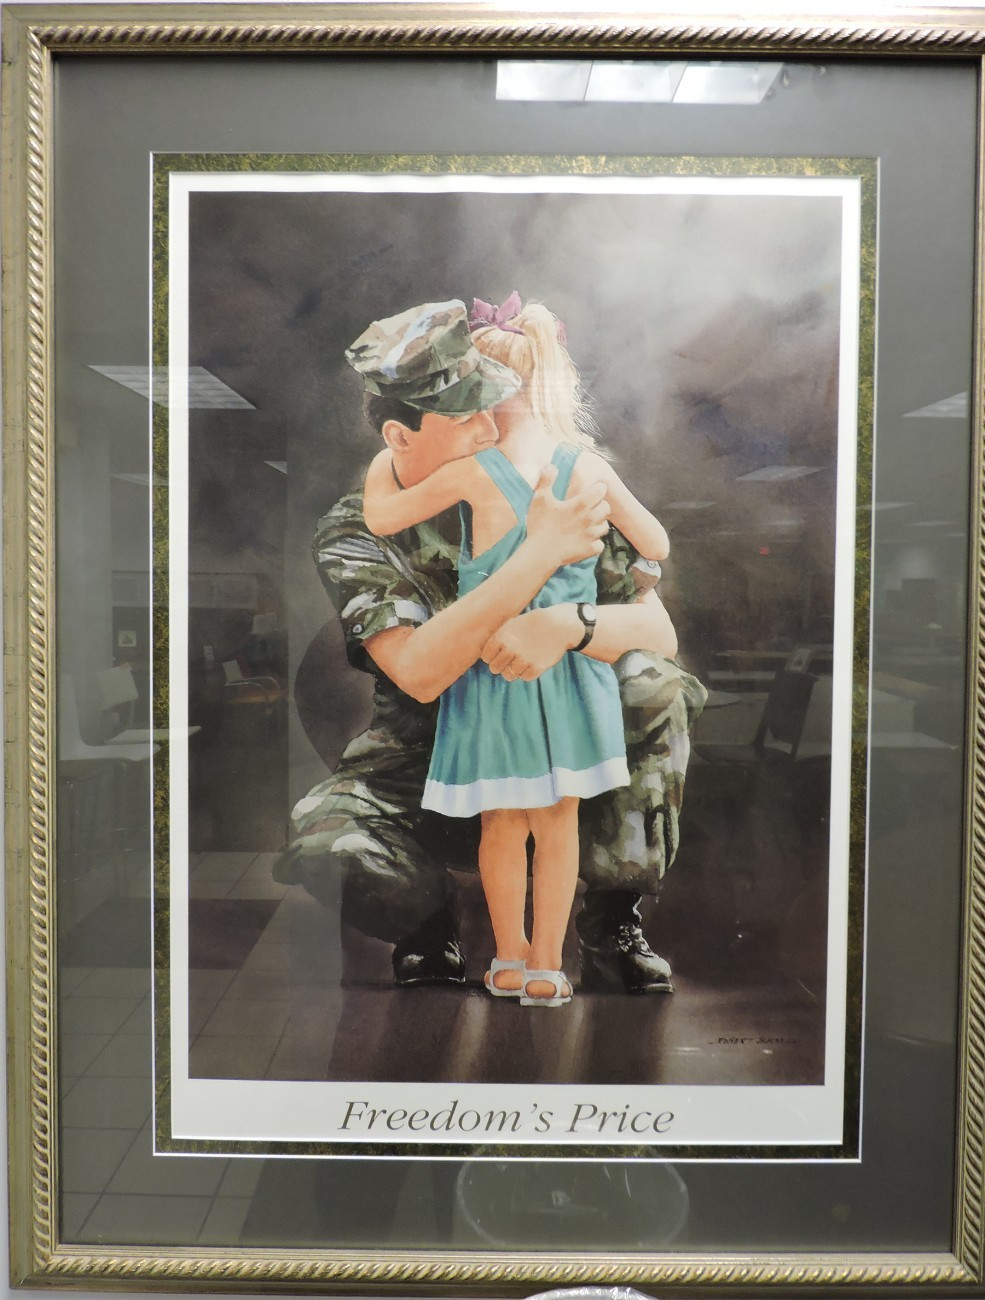 Freedoms price painting richmond office interiors freedoms price painting in richmond va jeuxipadfo Gallery